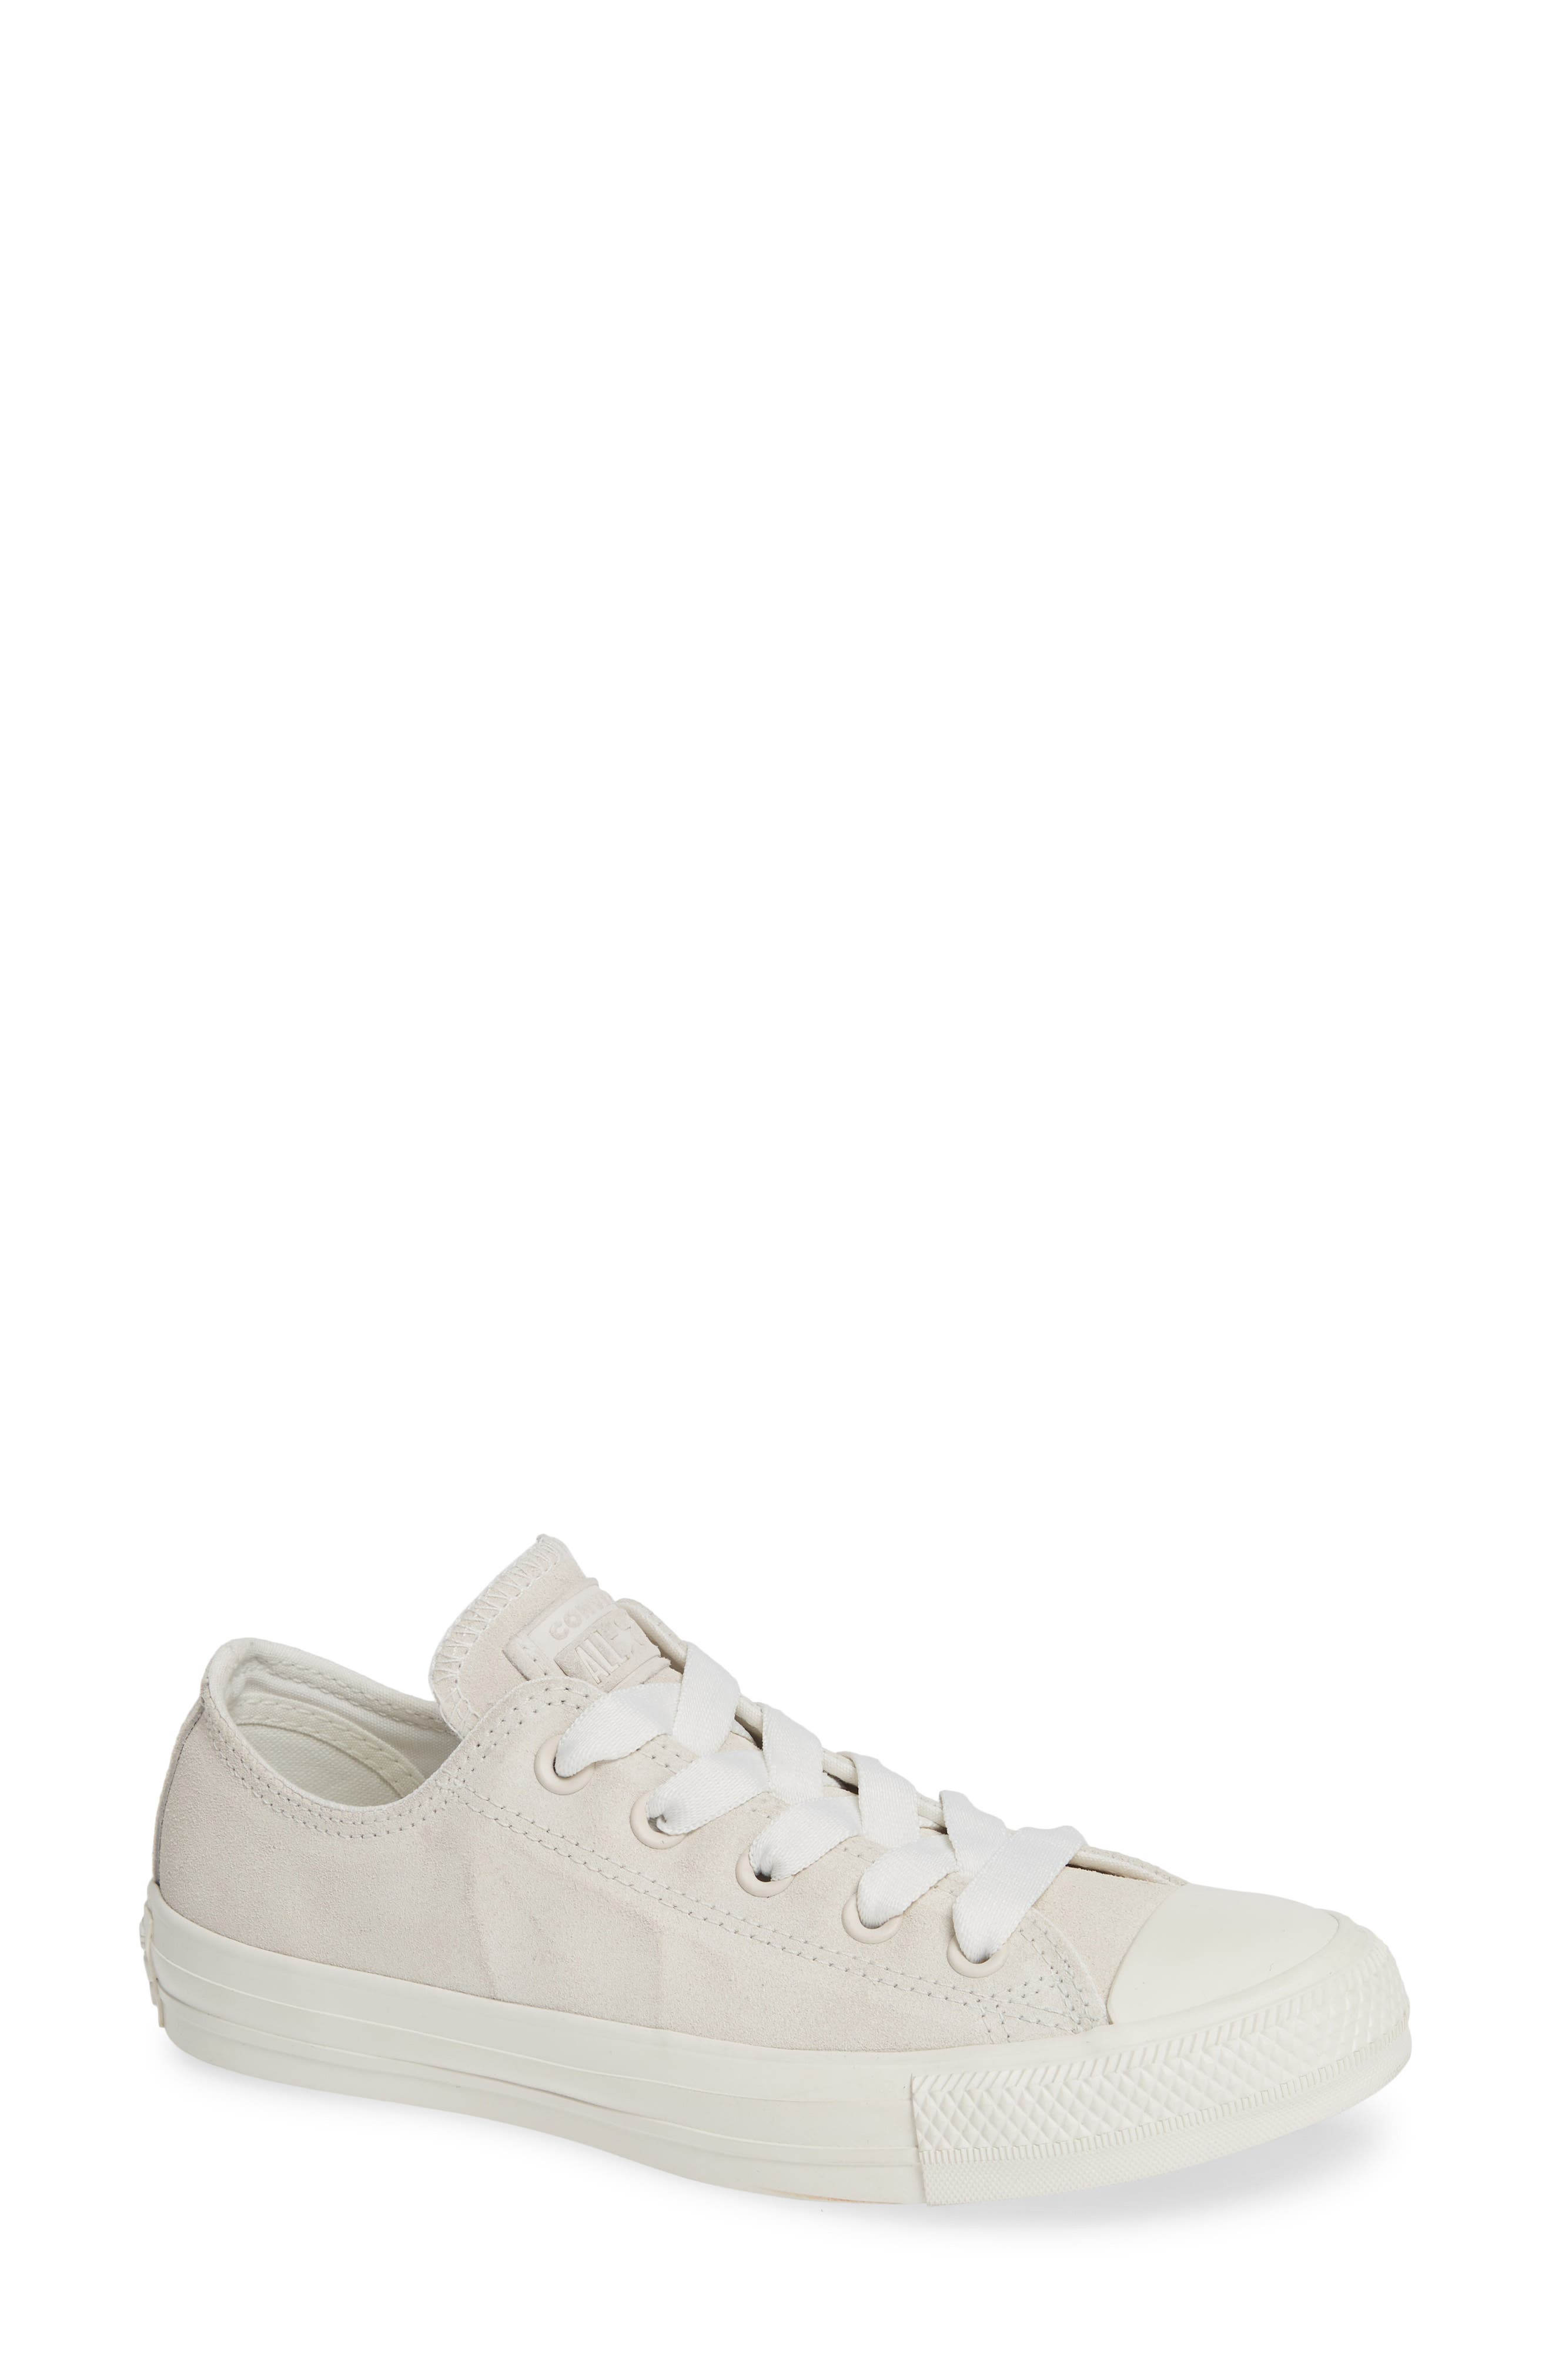 Chuck Taylor<sup>®</sup> All Star<sup>®</sup> Ox Sneaker,                             Main thumbnail 1, color,                             VINTAGE WHITE SUEDE